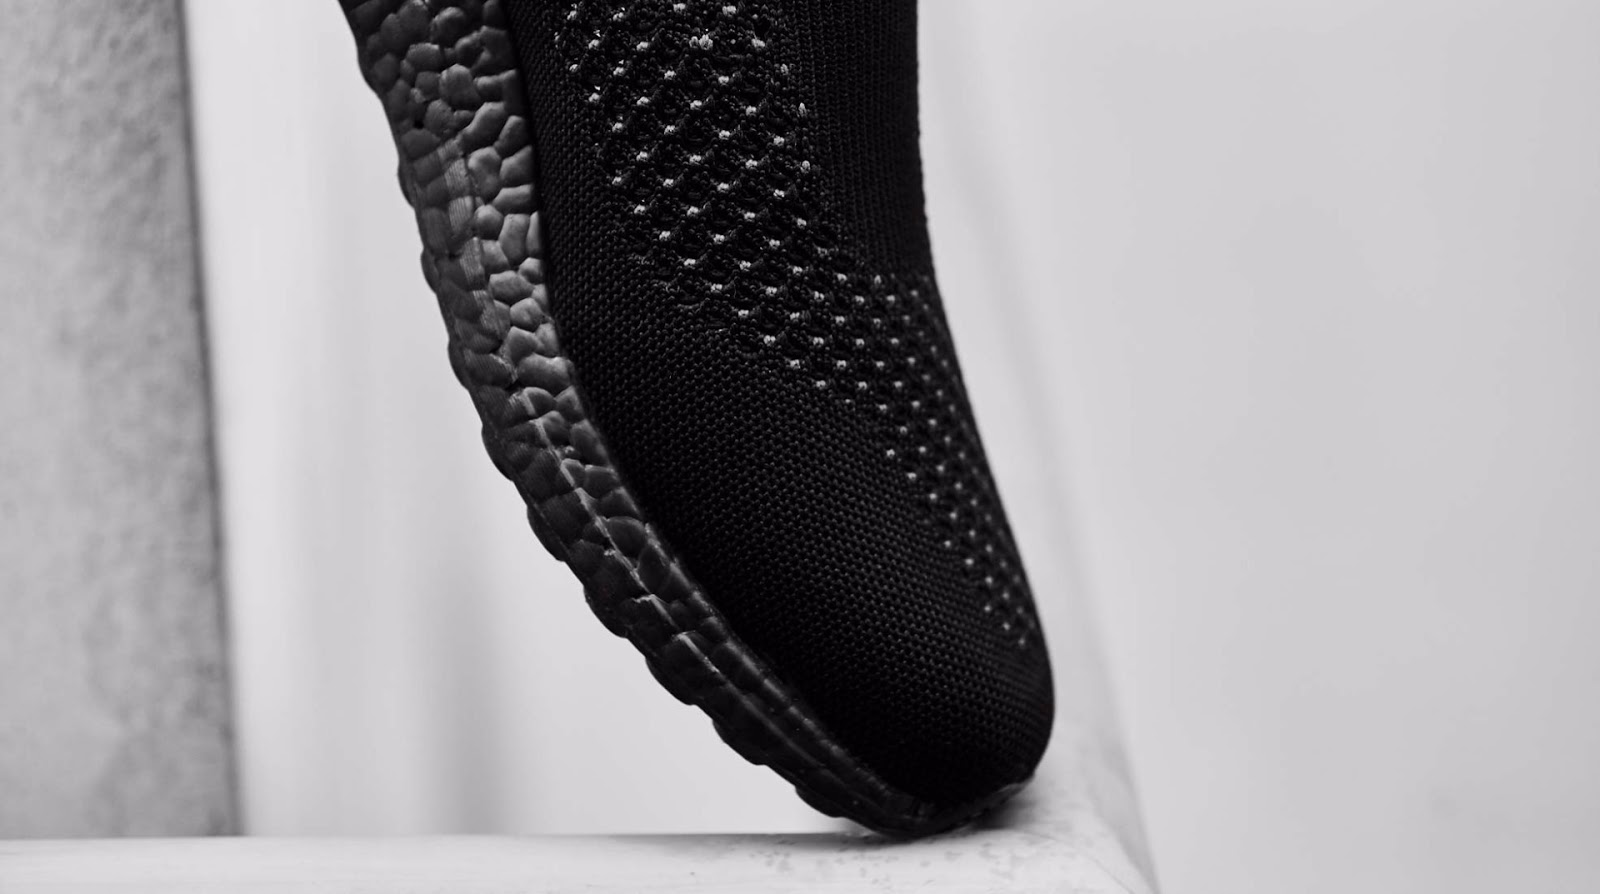 9db30f4a02ac9 Triple Black Adidas Ace 16+ PureControl Ultra Boost Released - Footy  Headlines ...